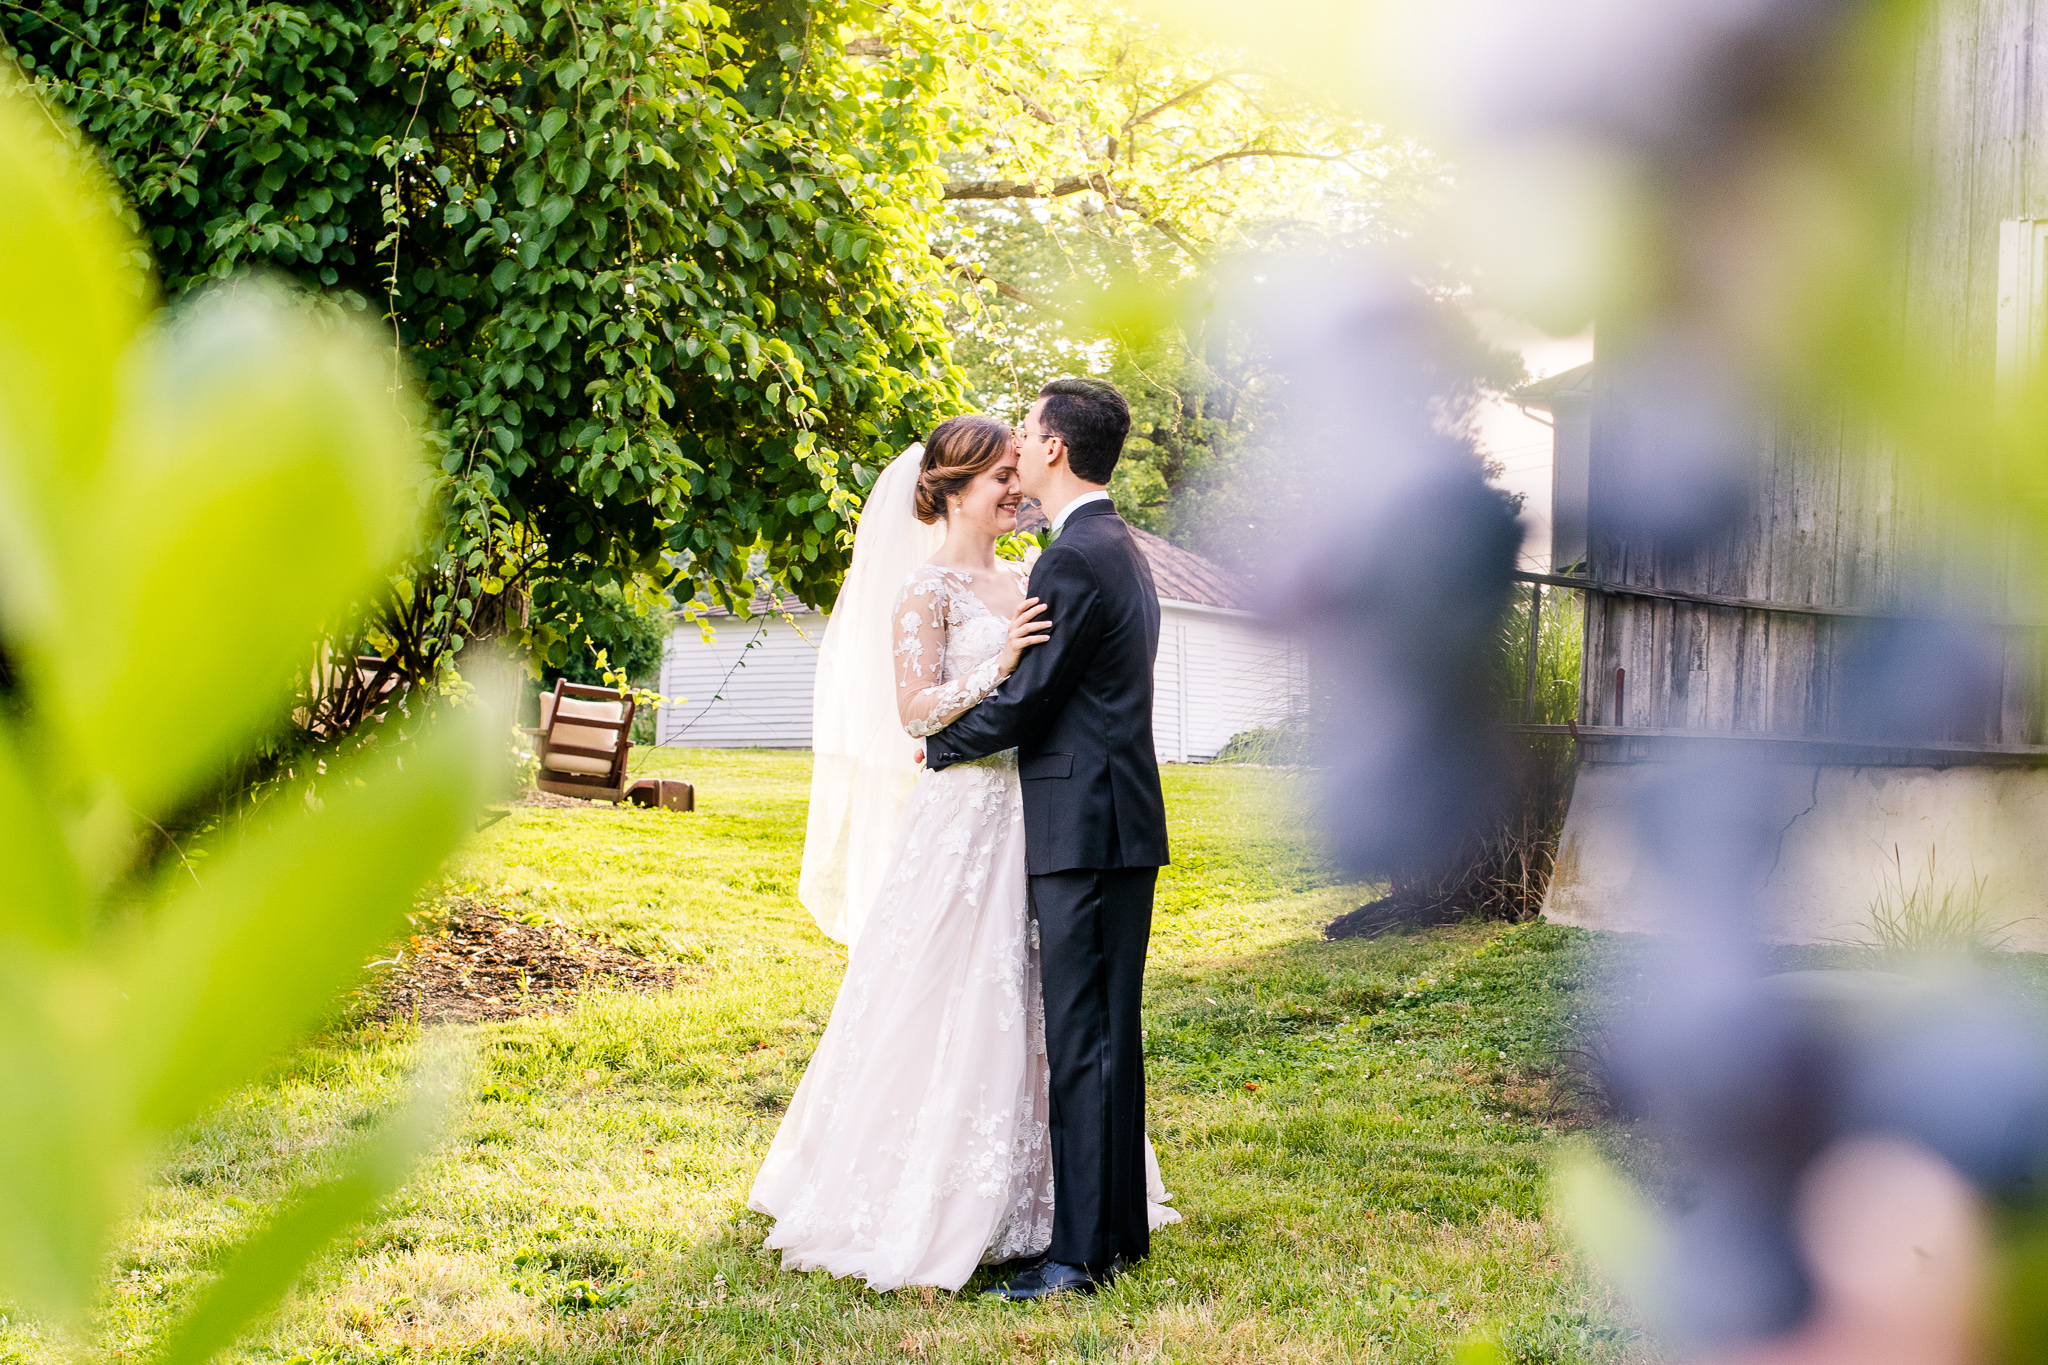 A bride and groom embrace as he gives her a kiss on the forehead with a blueberry bush in the foreground during golden hour at The Barns at Hamilton Station Vineyard in Leesburg, Northern Virginia